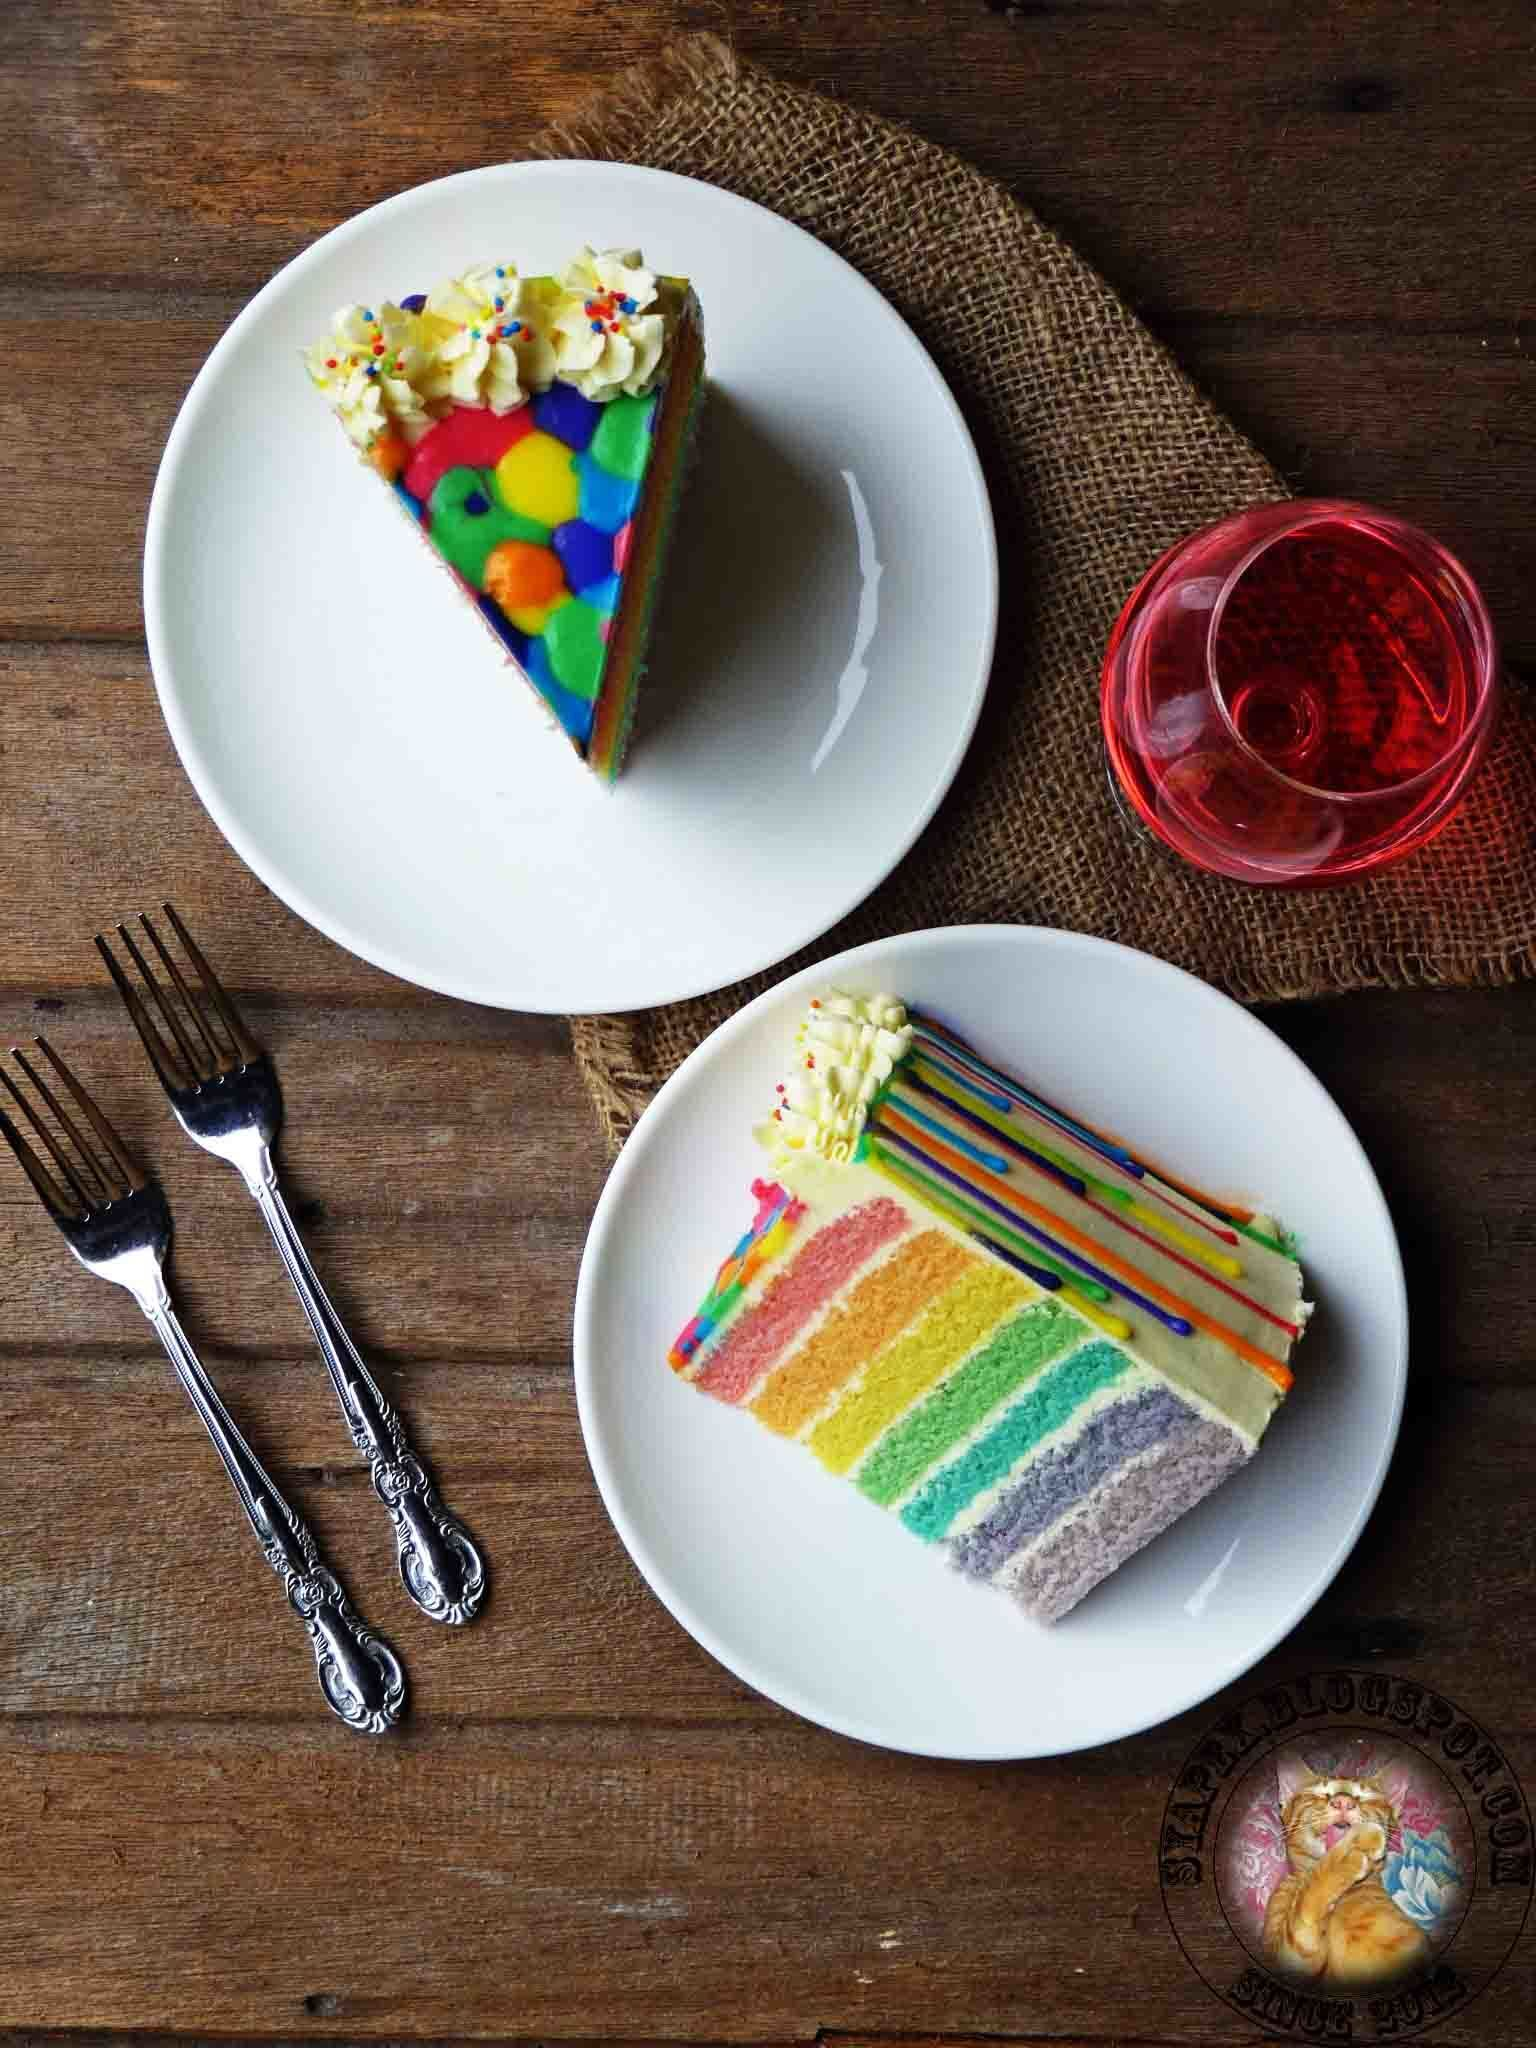 Rainbow Cake and Swiss Meringue Buttercream